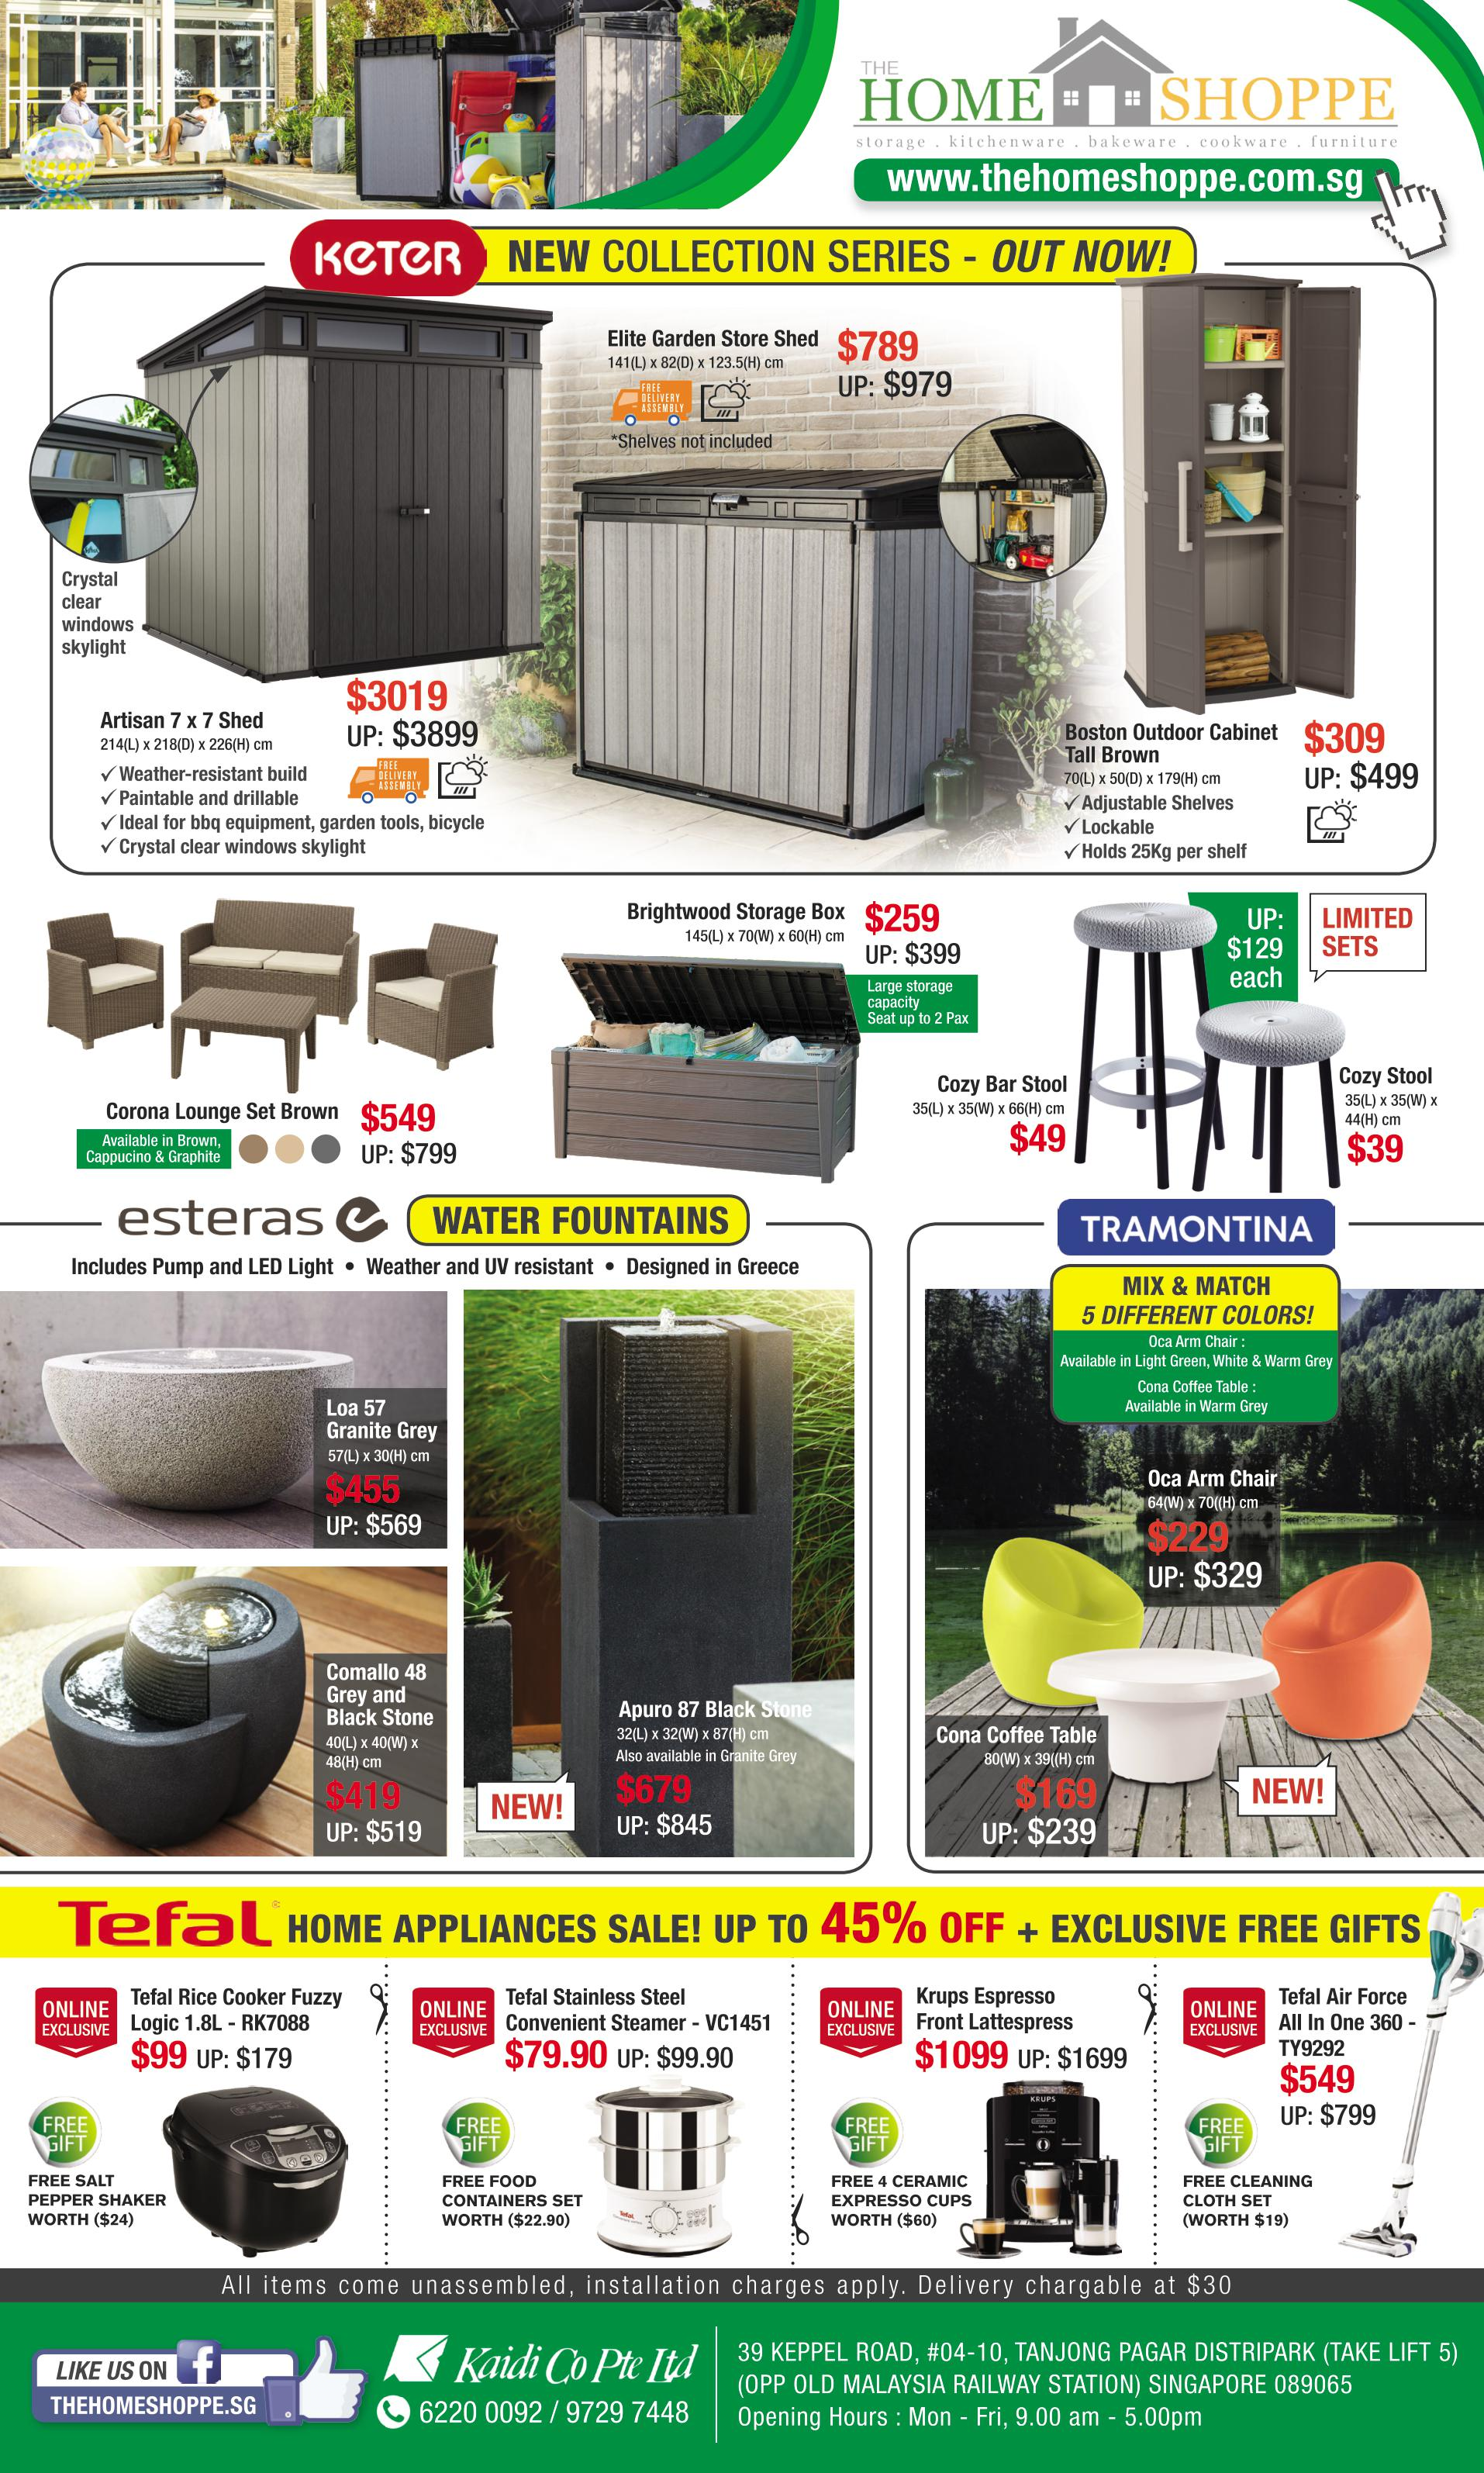 The home shoppe april sale discount garden sheds keter waterproof cabinet esteras water fountain tefal offer sg